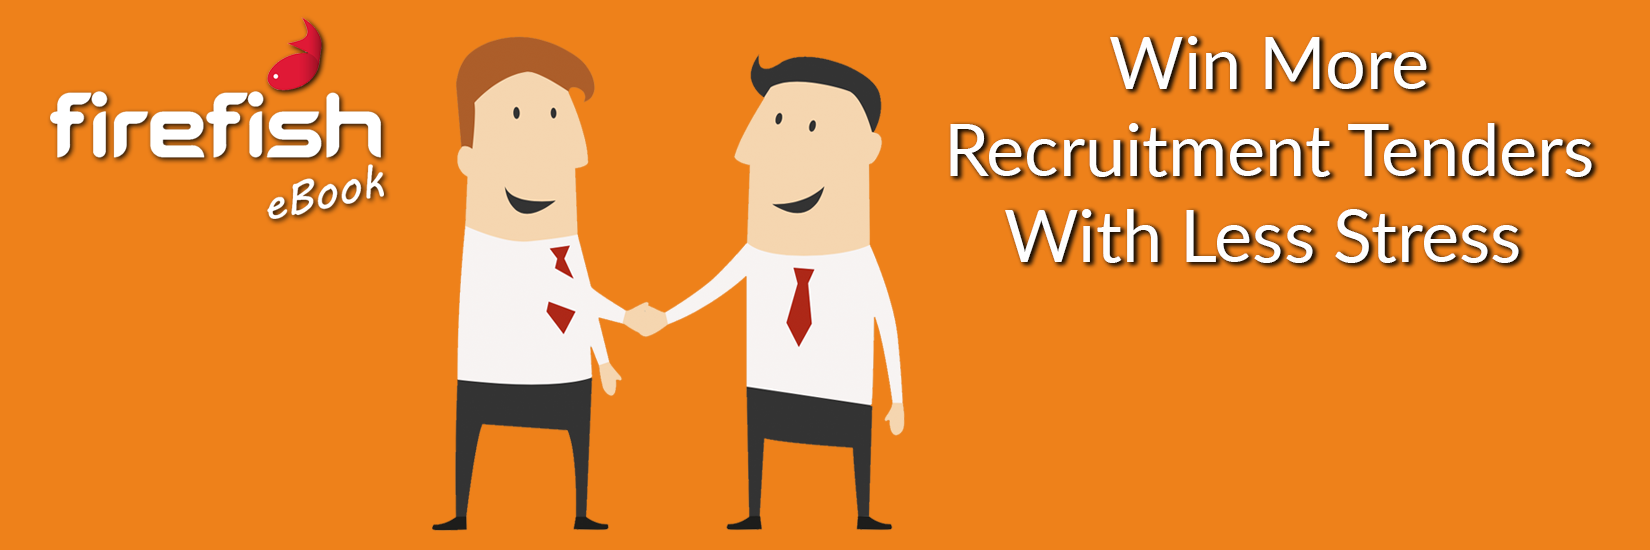 Win More Recruitment Tenders with Less Stress